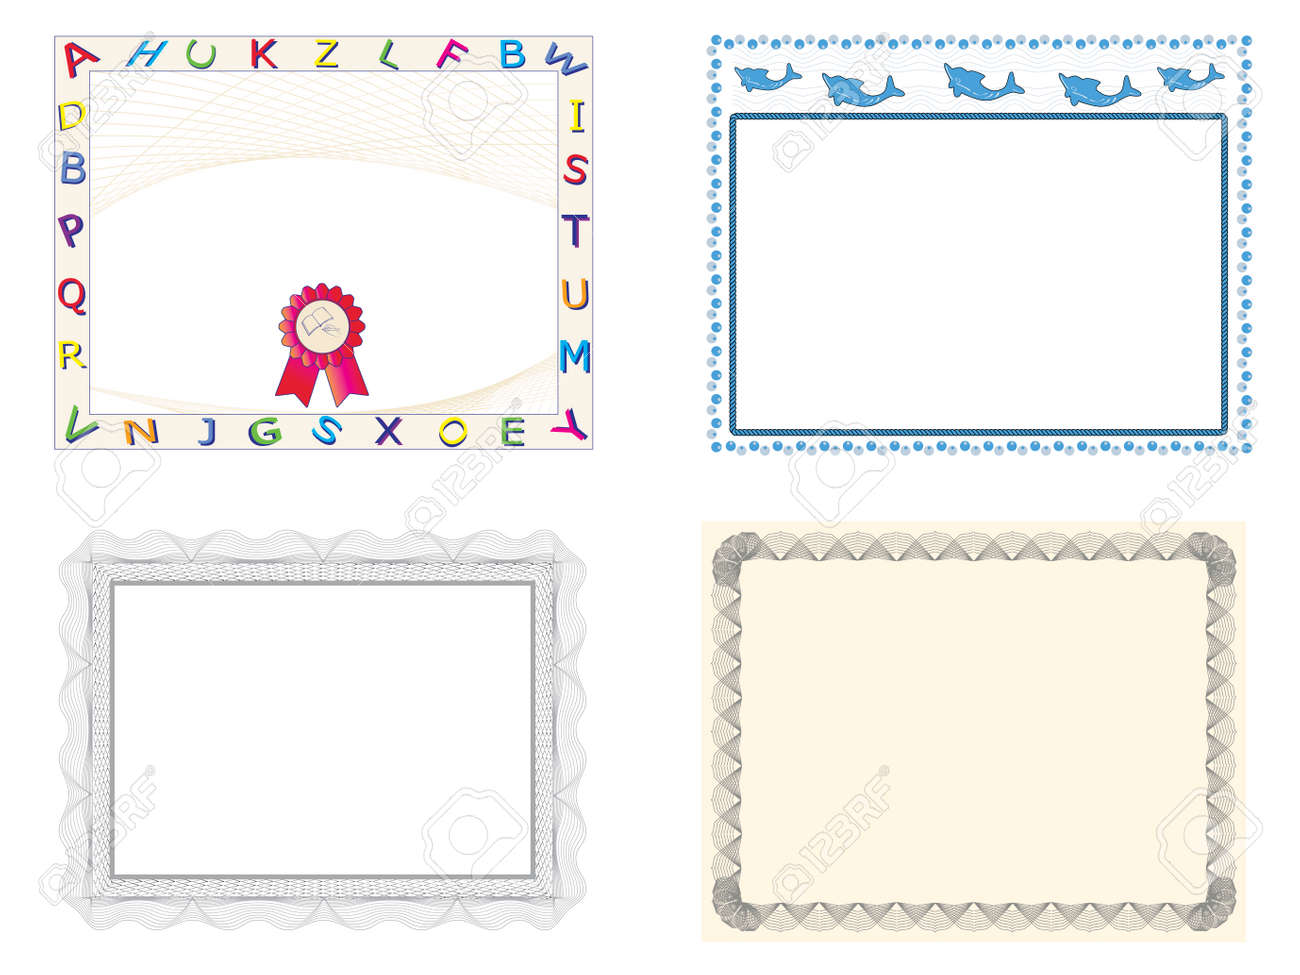 Four Certificate Of Completion Templates Royalty Free Cliparts